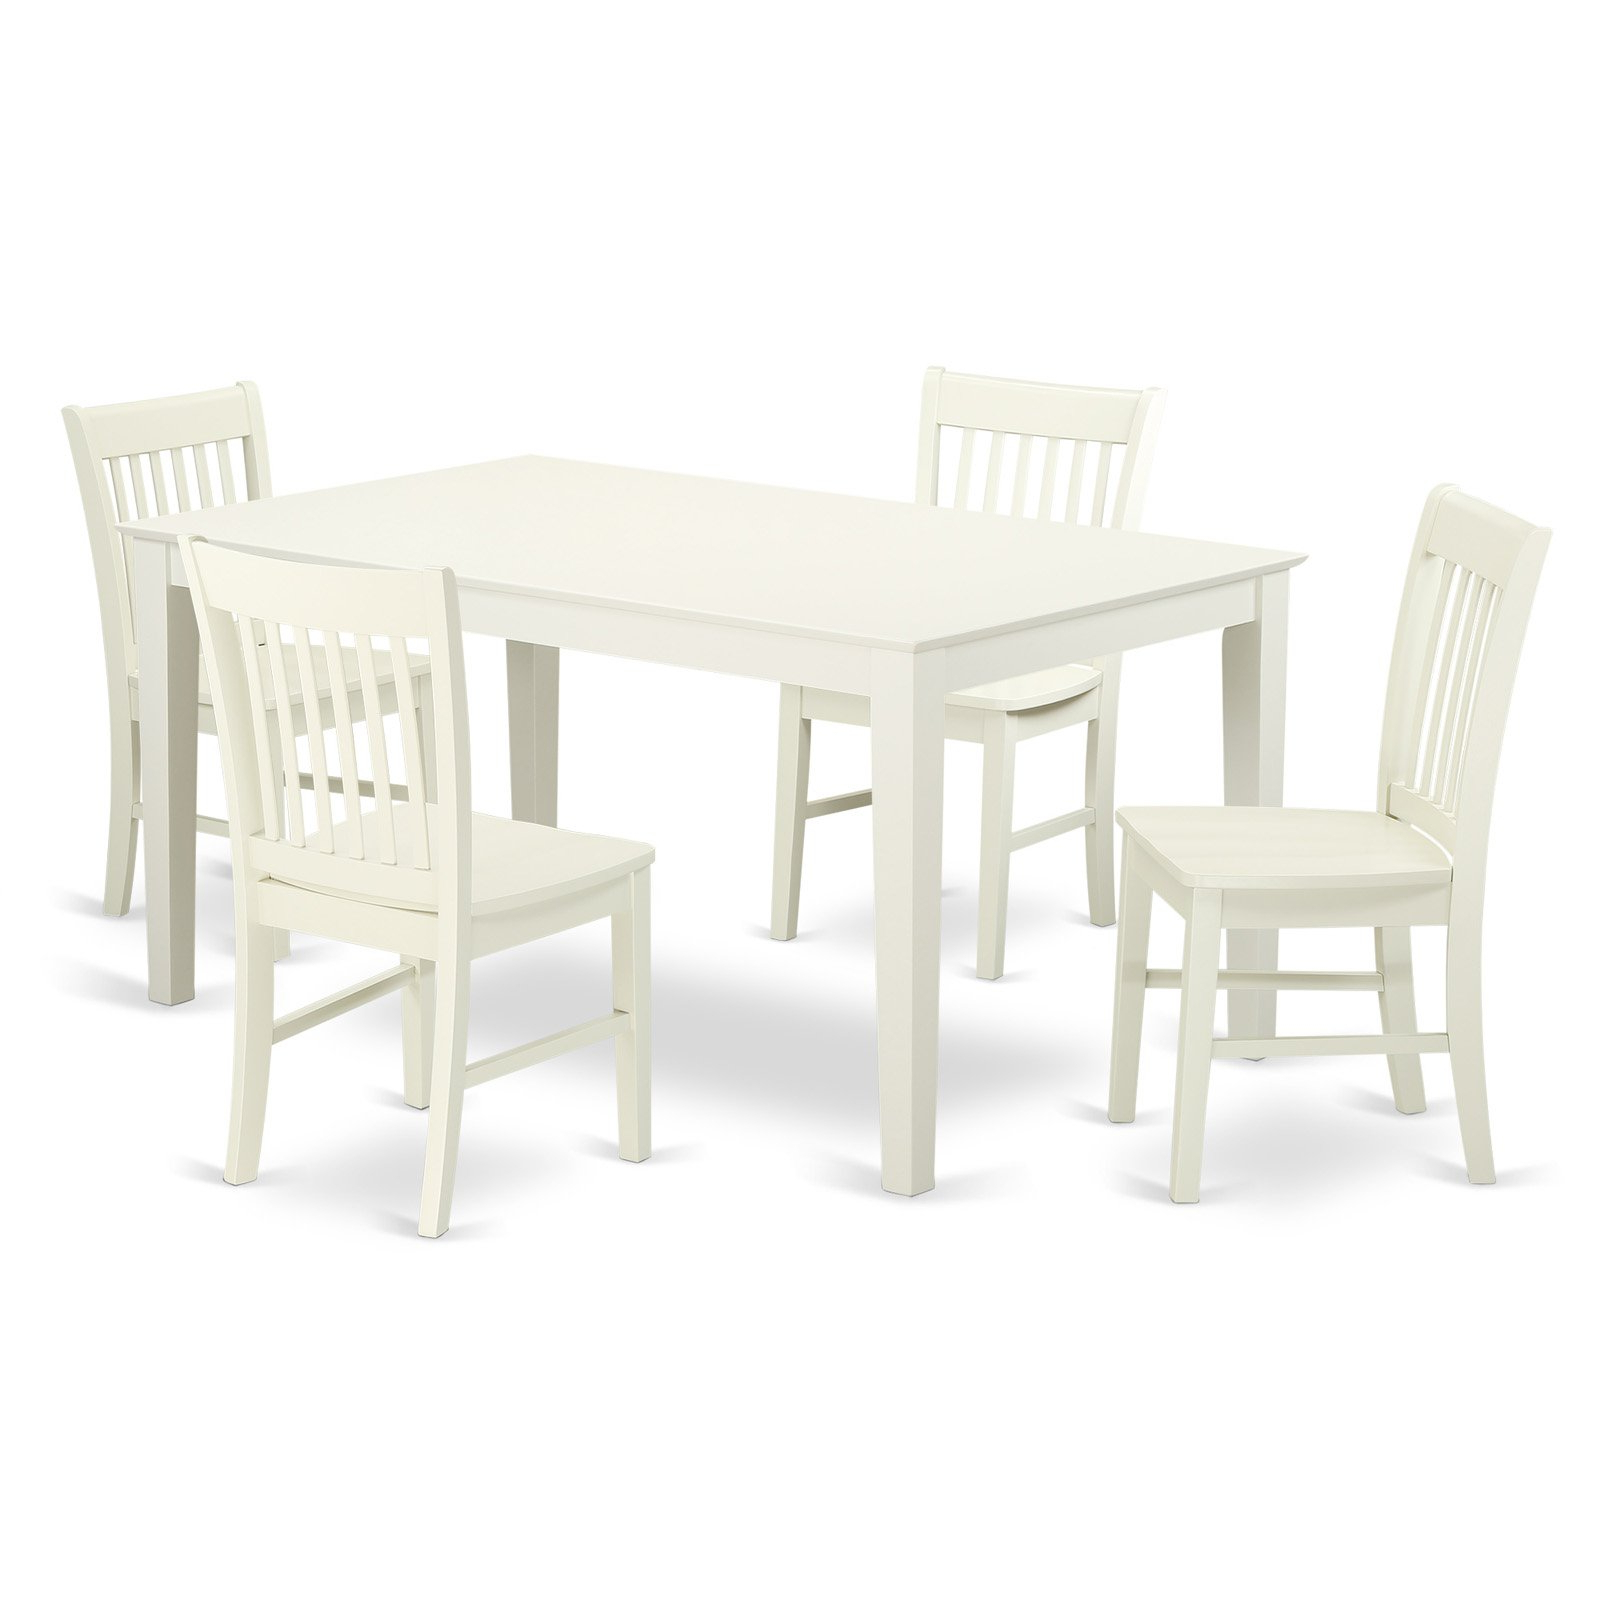 East West Furniture Capri Cano5 Five Piece Dining Table Set In 2019 With Regard To Best And Newest Smyrna 3 Piece Dining Sets (Gallery 20 of 25)